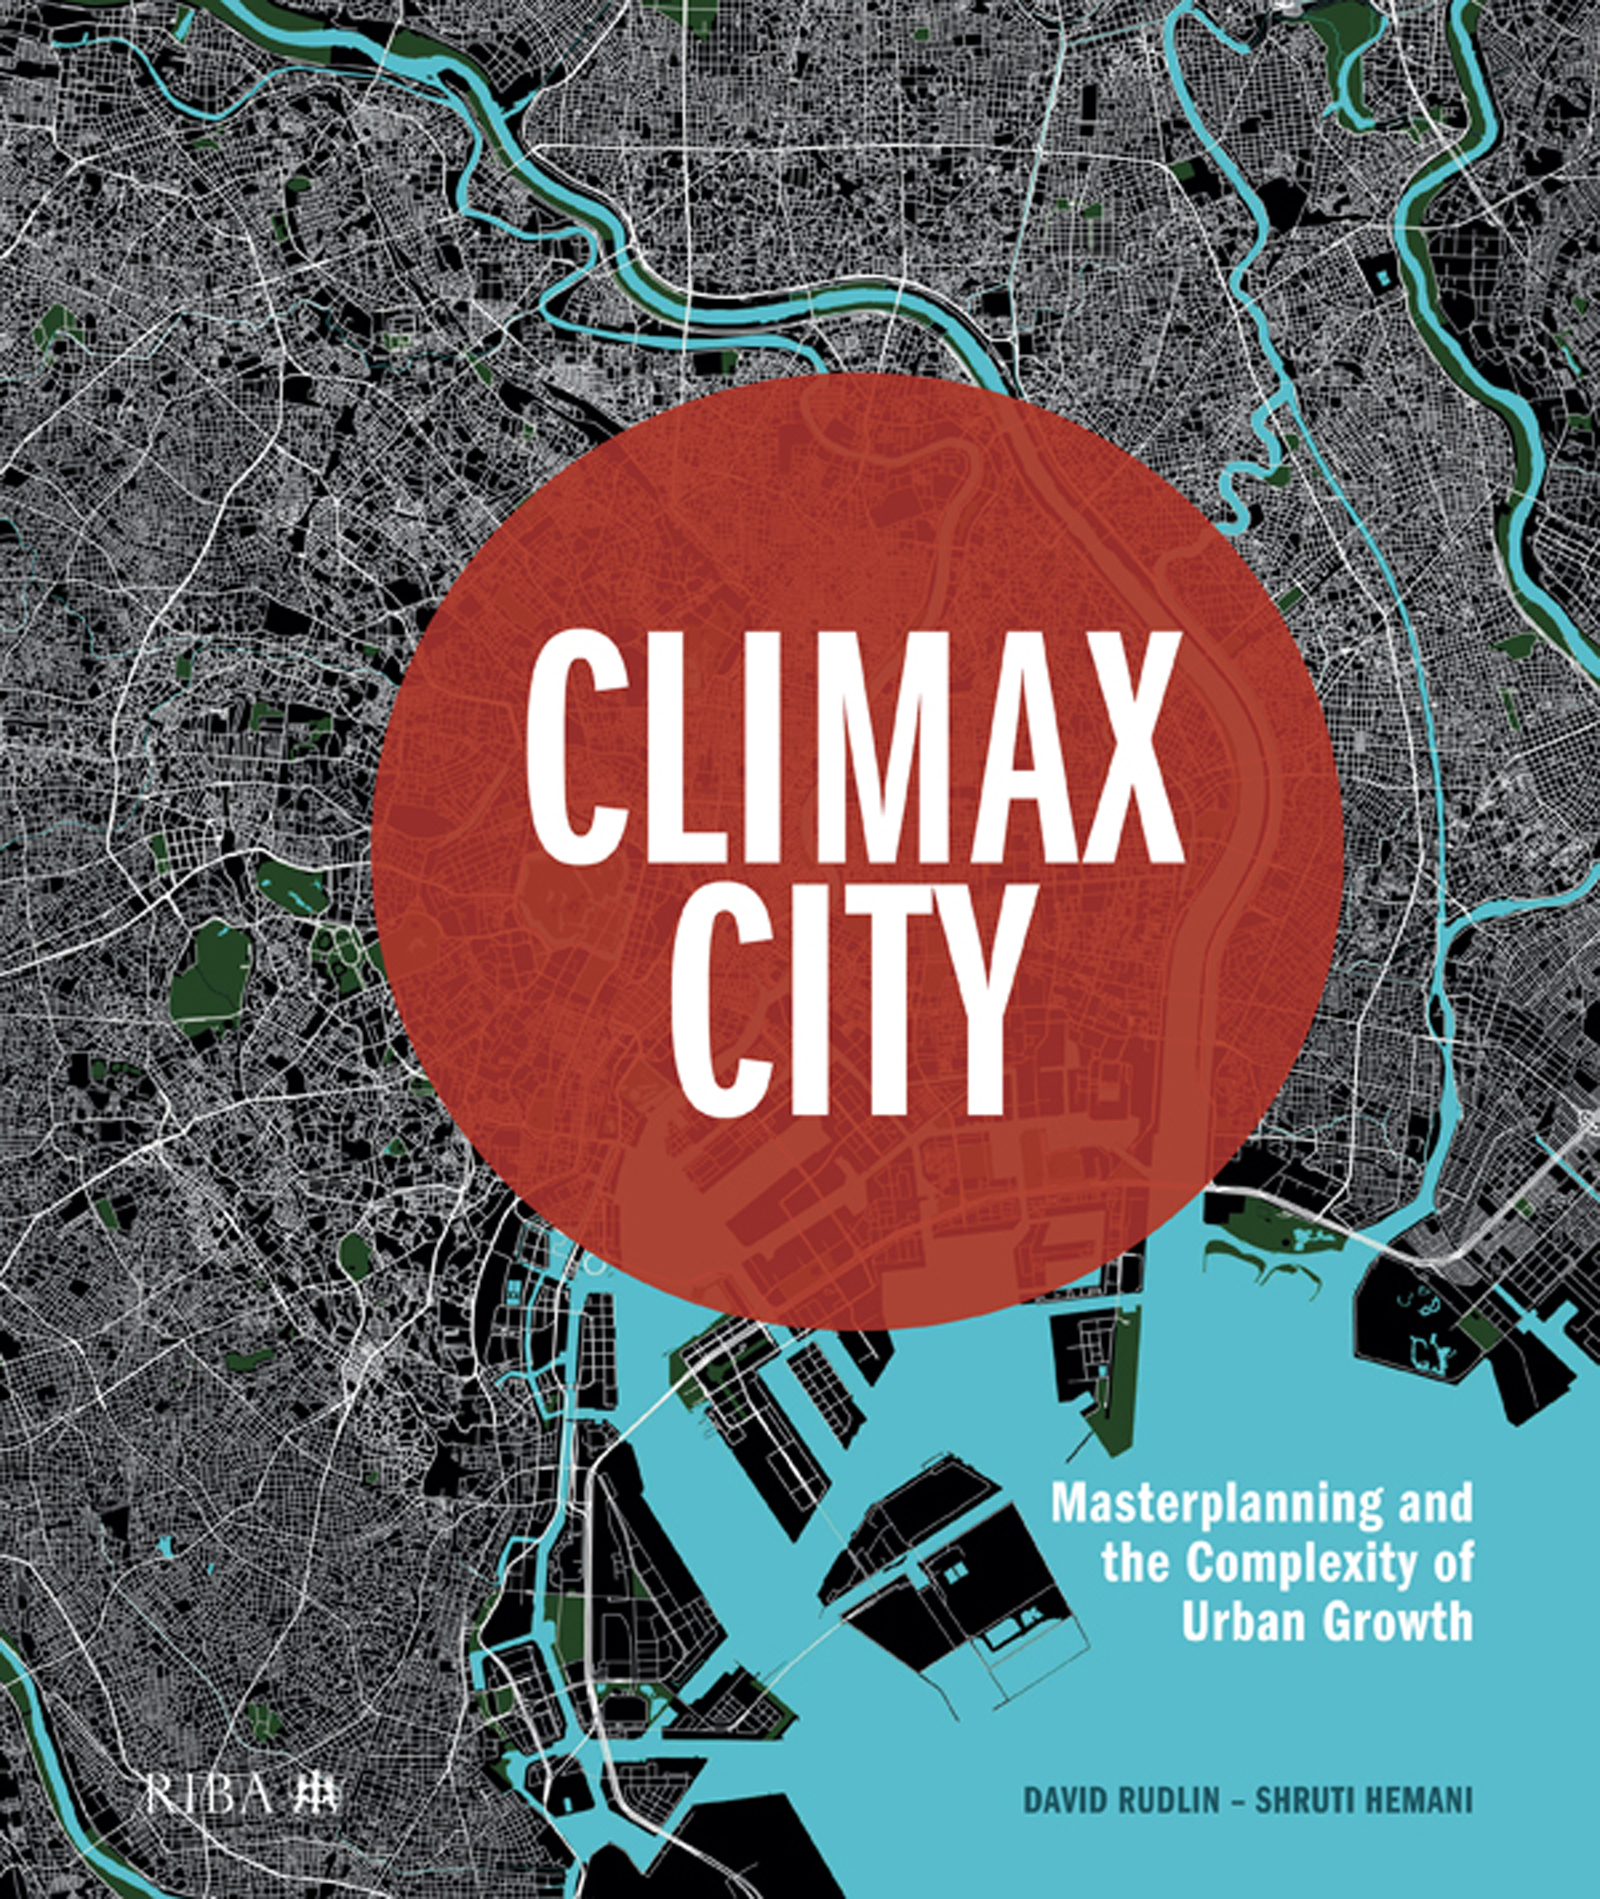 Climax City